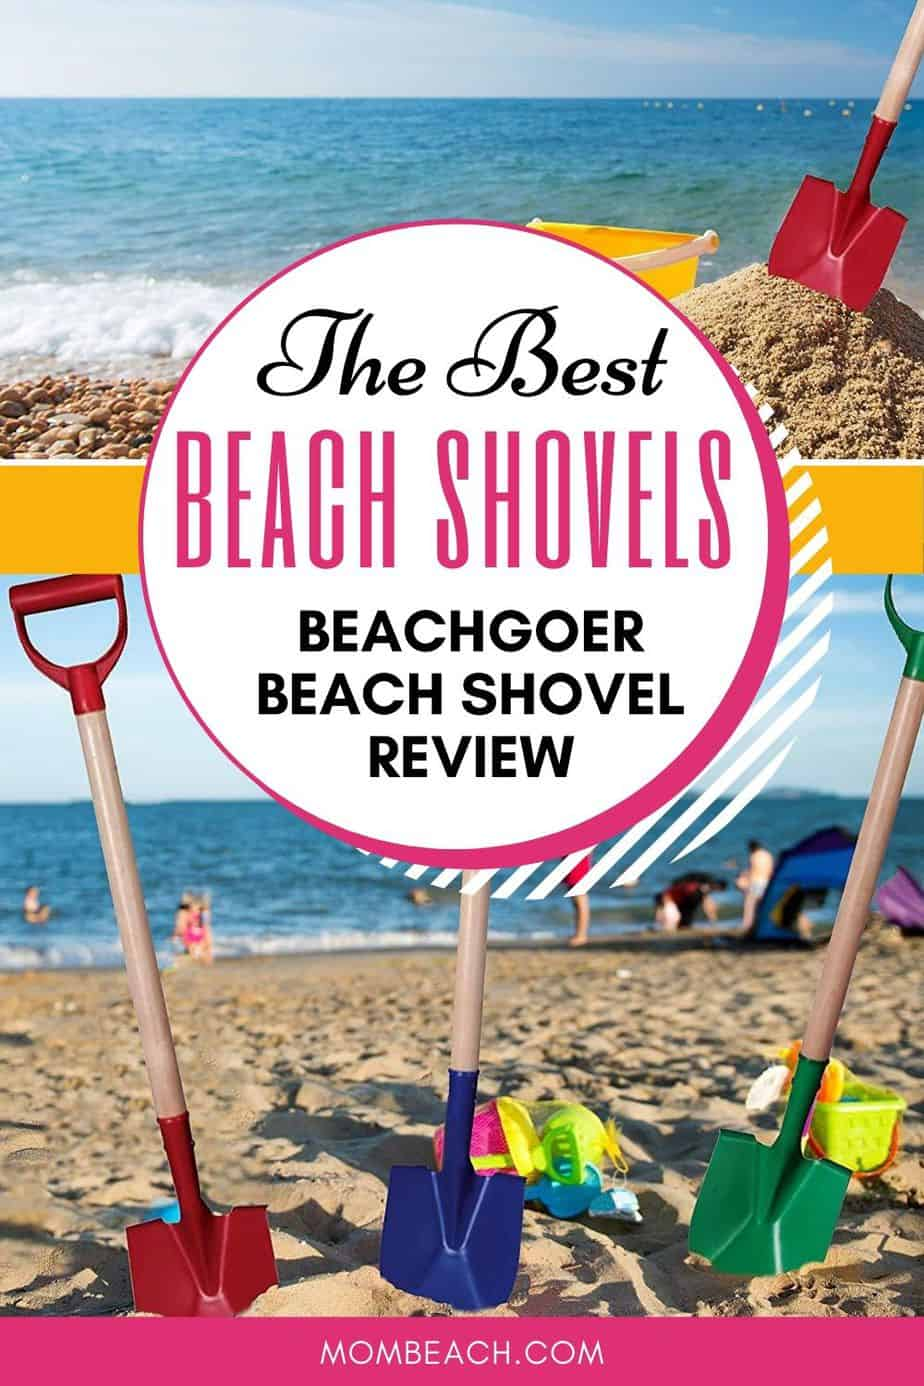 These beach shovels are great for the beach and even gardening! Have fun with these fun beach shovels. Learn all about them in our review! #bestbeachshovels #beachshovels #beachproducts #beachfun